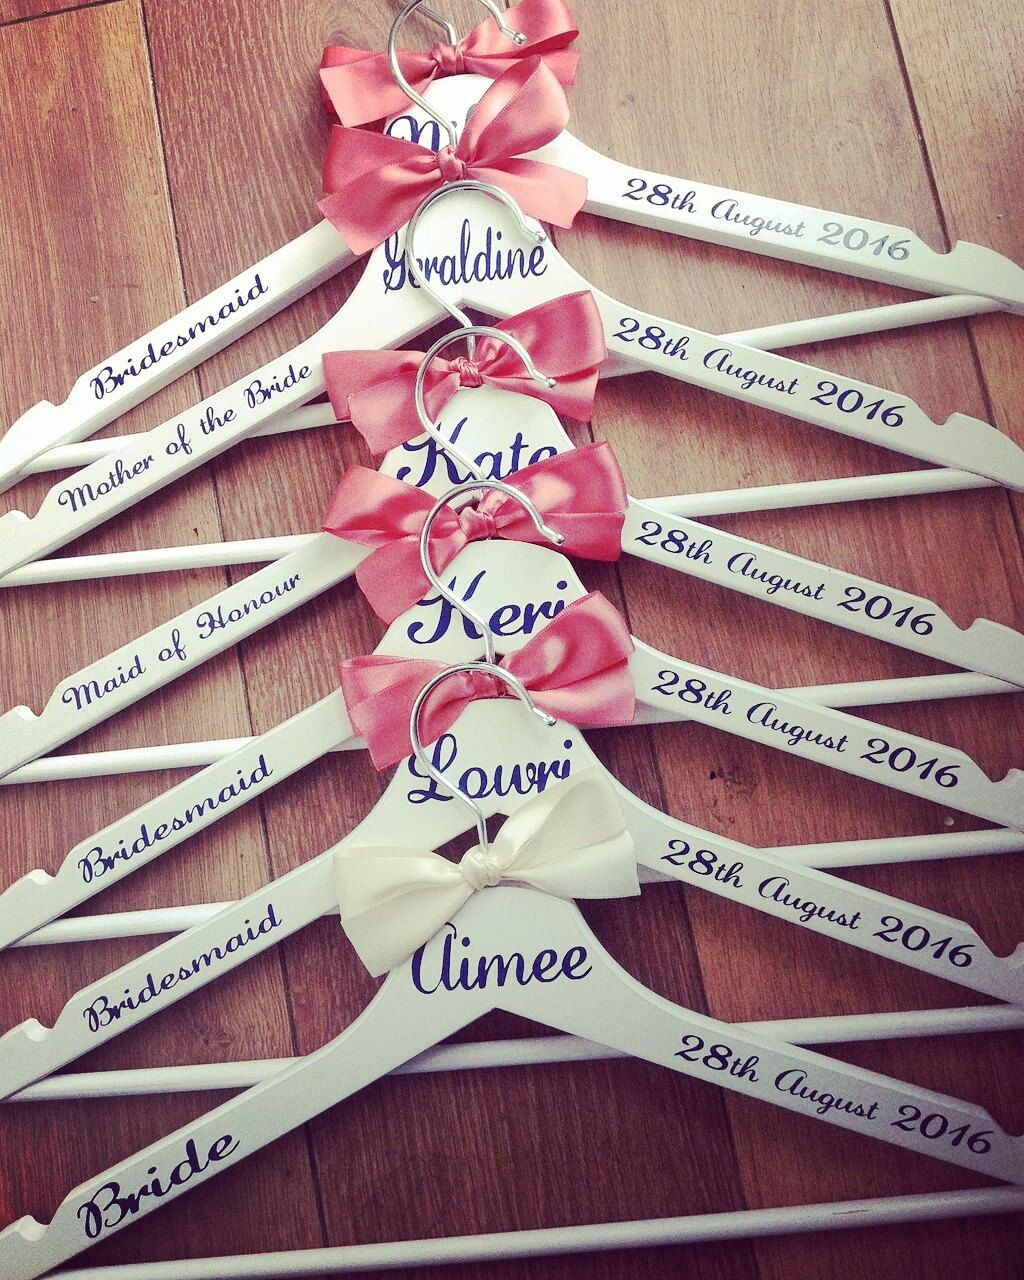 12 x Personalised Wedding / Bridal Coat Hangers Great for the whole ...